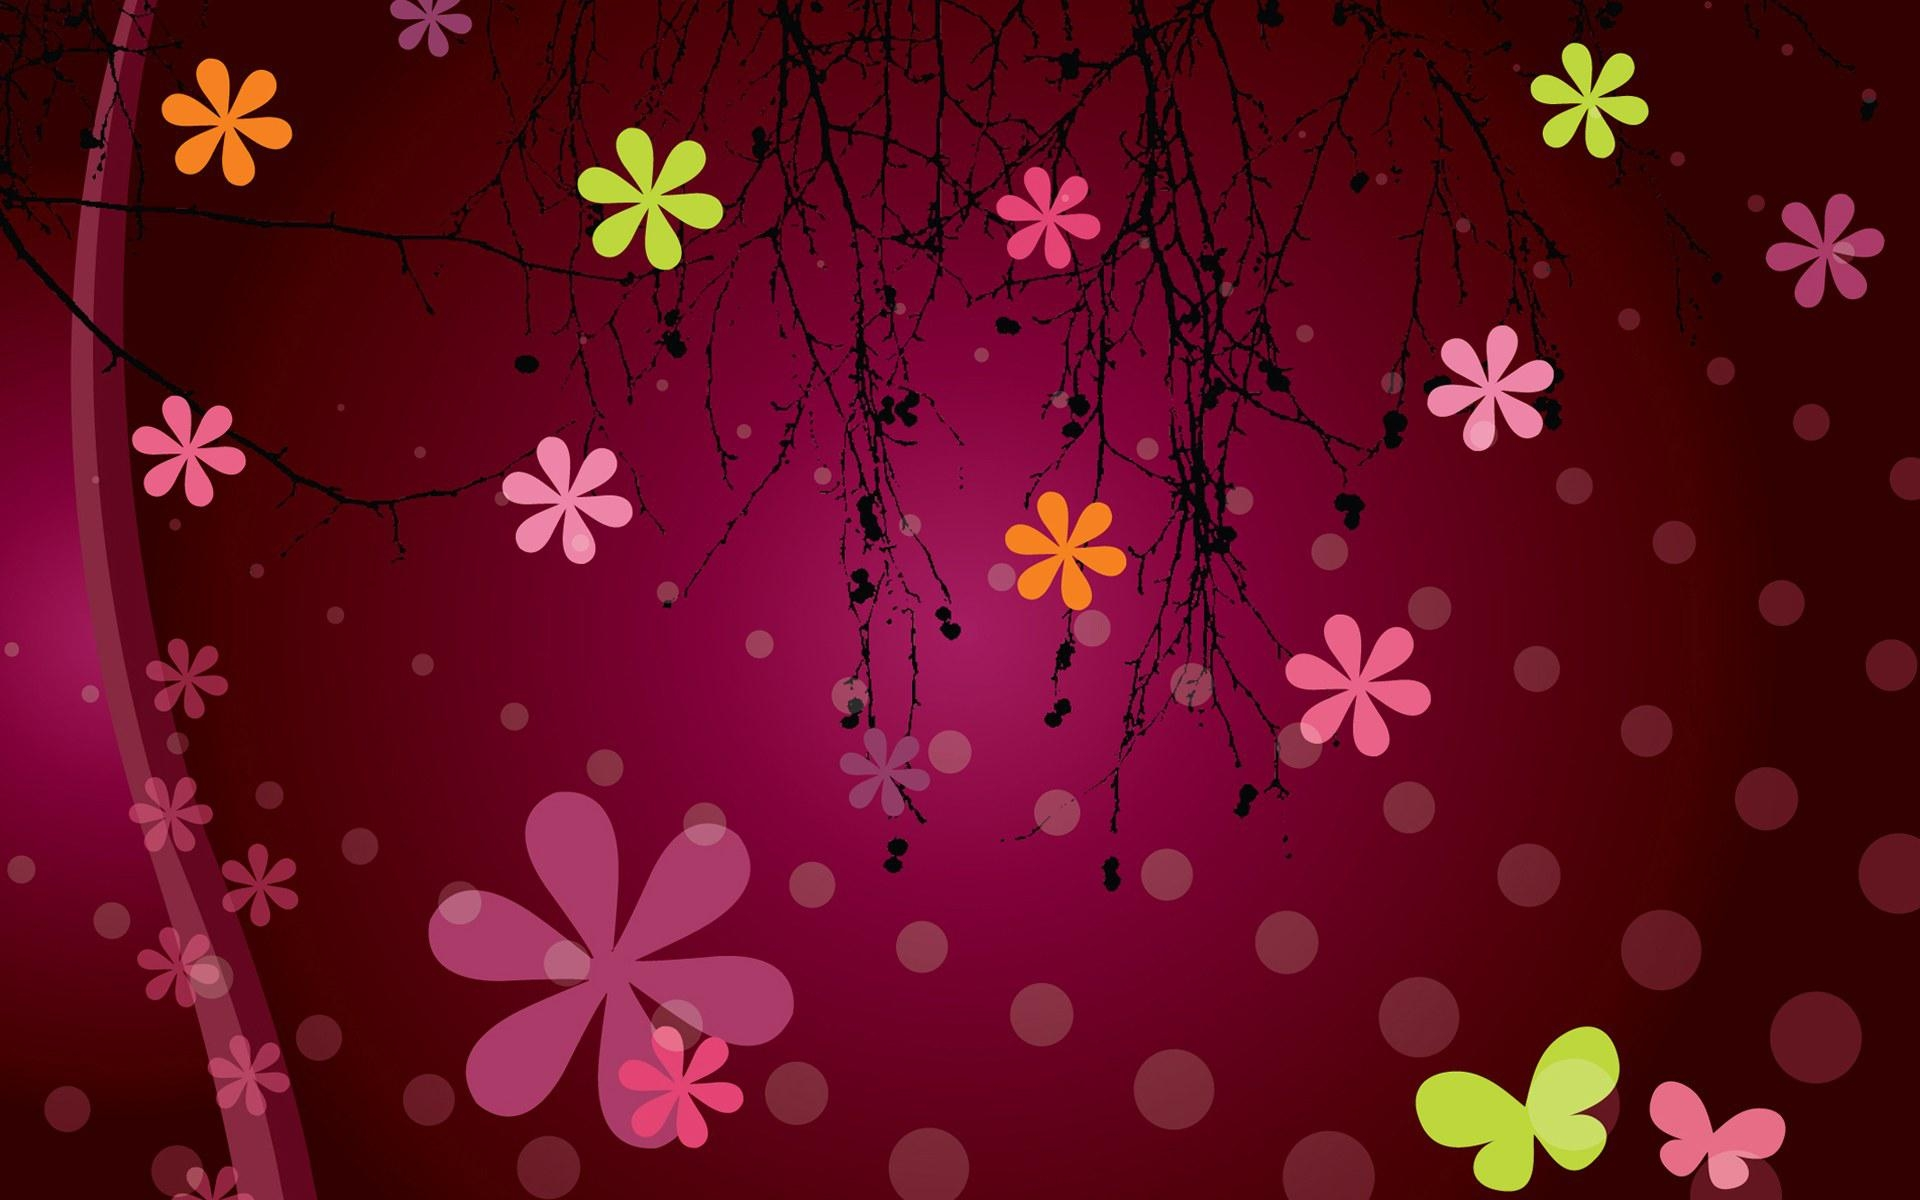 Girly Backgrounds Dektop Wallpapers free download   PixelsTalk Net Vector flower patterns girly background